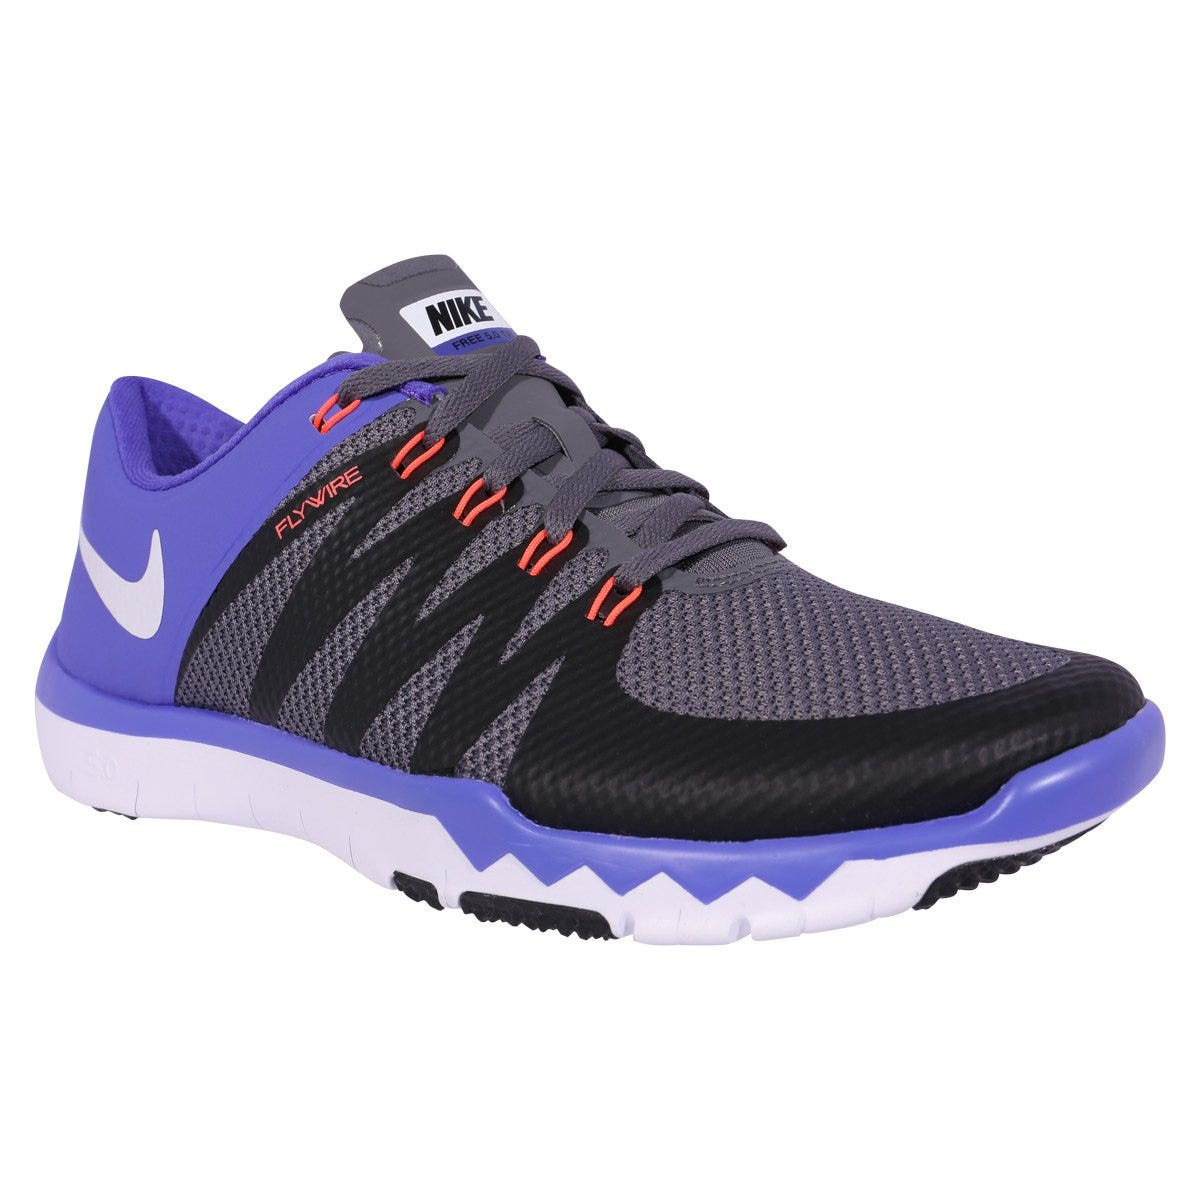 Nike Free 5.0 Trainer V6 Mens Training Shoes - Dark GrayBlackPersian Violet